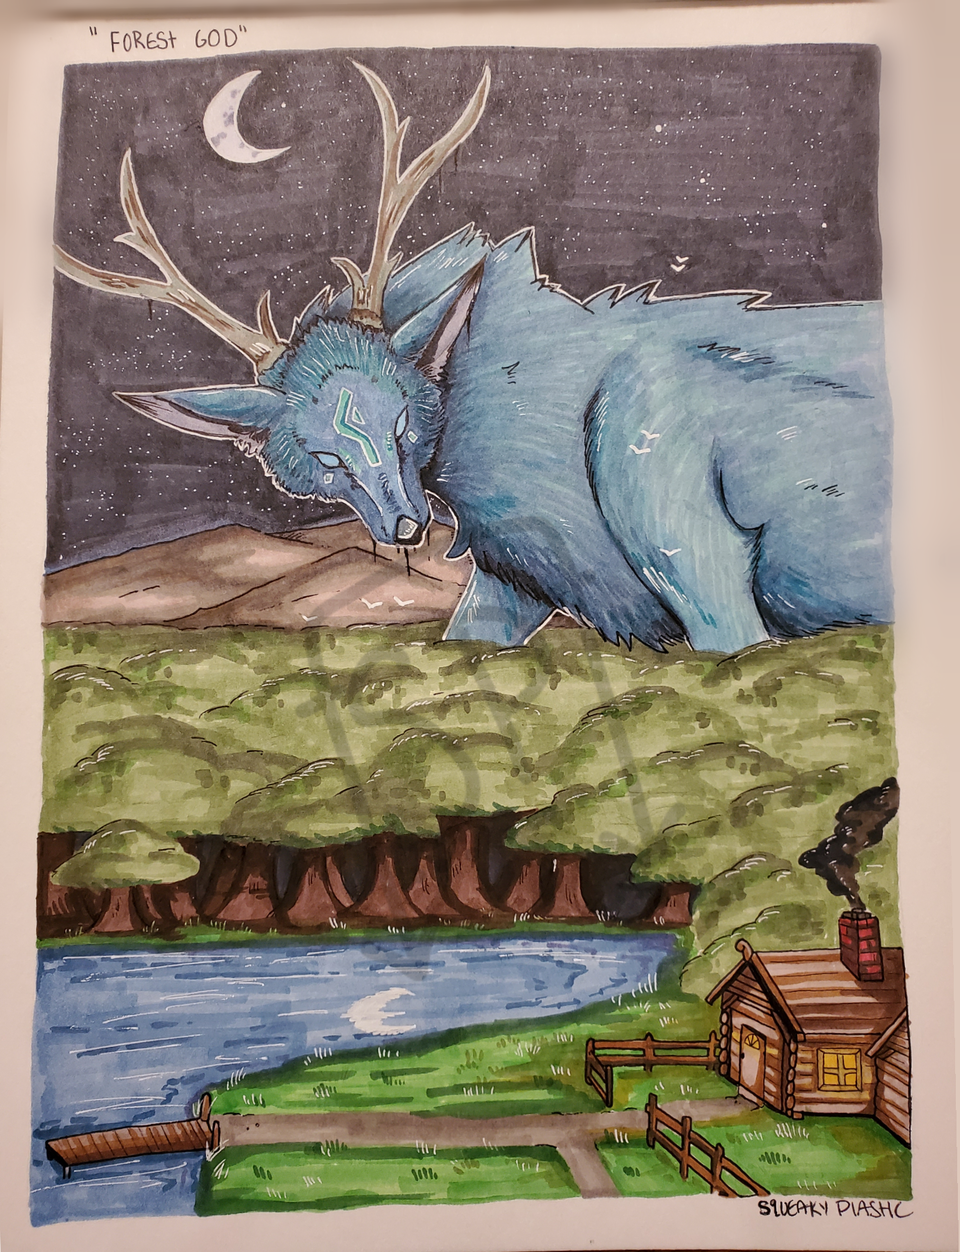 Forest God [traditional] Illust of Squeaky Plastic medibangpaint Copic god spirit traditional moon deer star